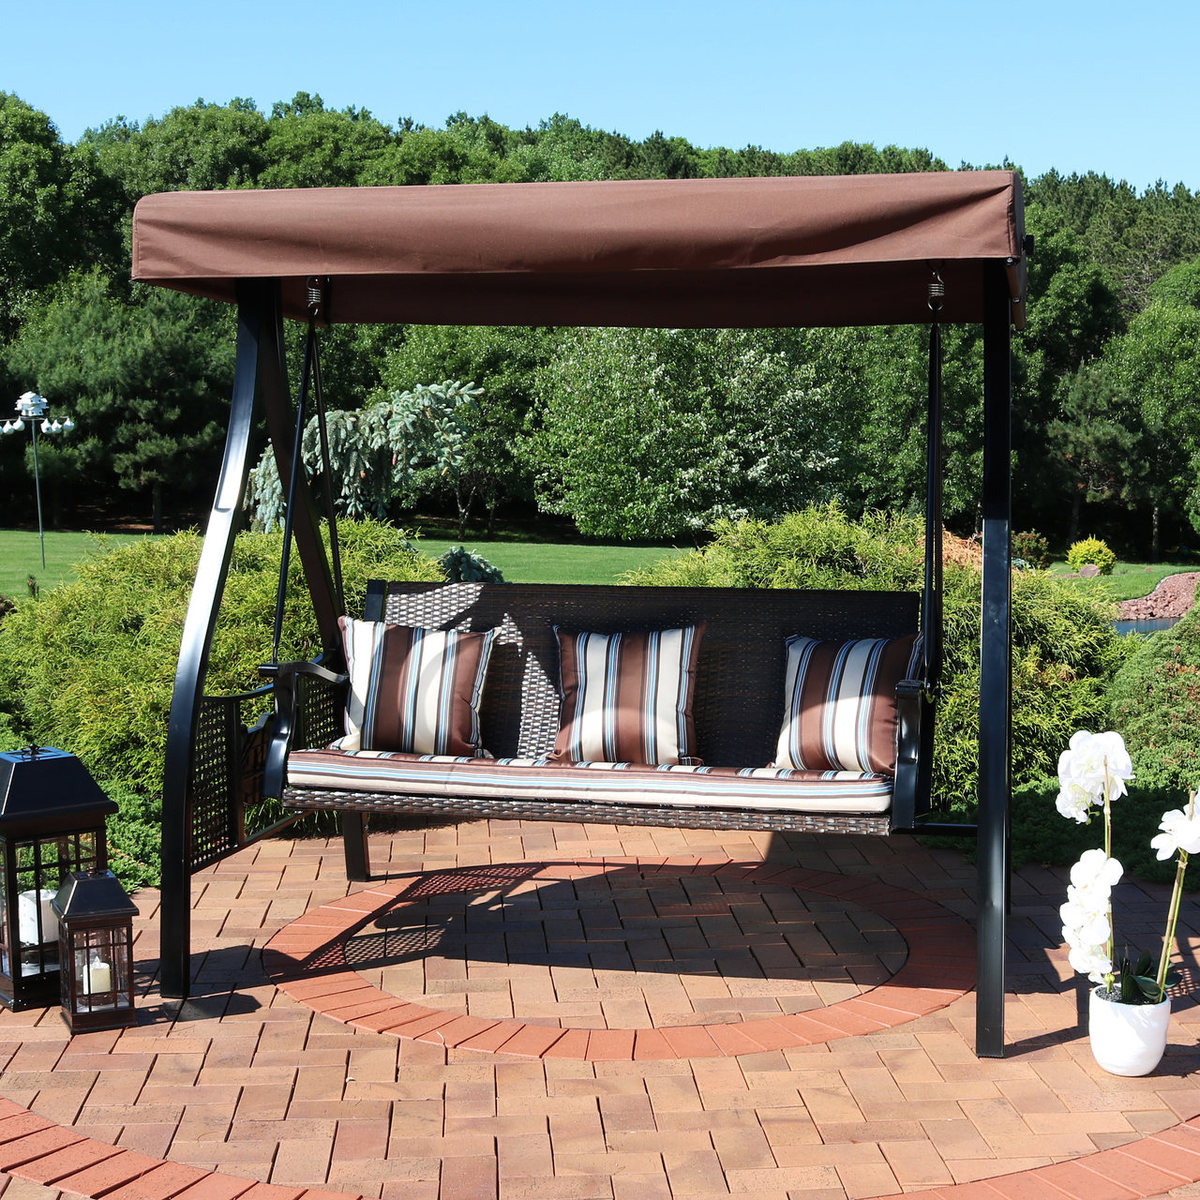 Fashionable Home & Garden Patio Swing Adjustable Canopy Steel Frame Gray Pertaining To Patio Gazebo Porch Swings (Gallery 13 of 30)